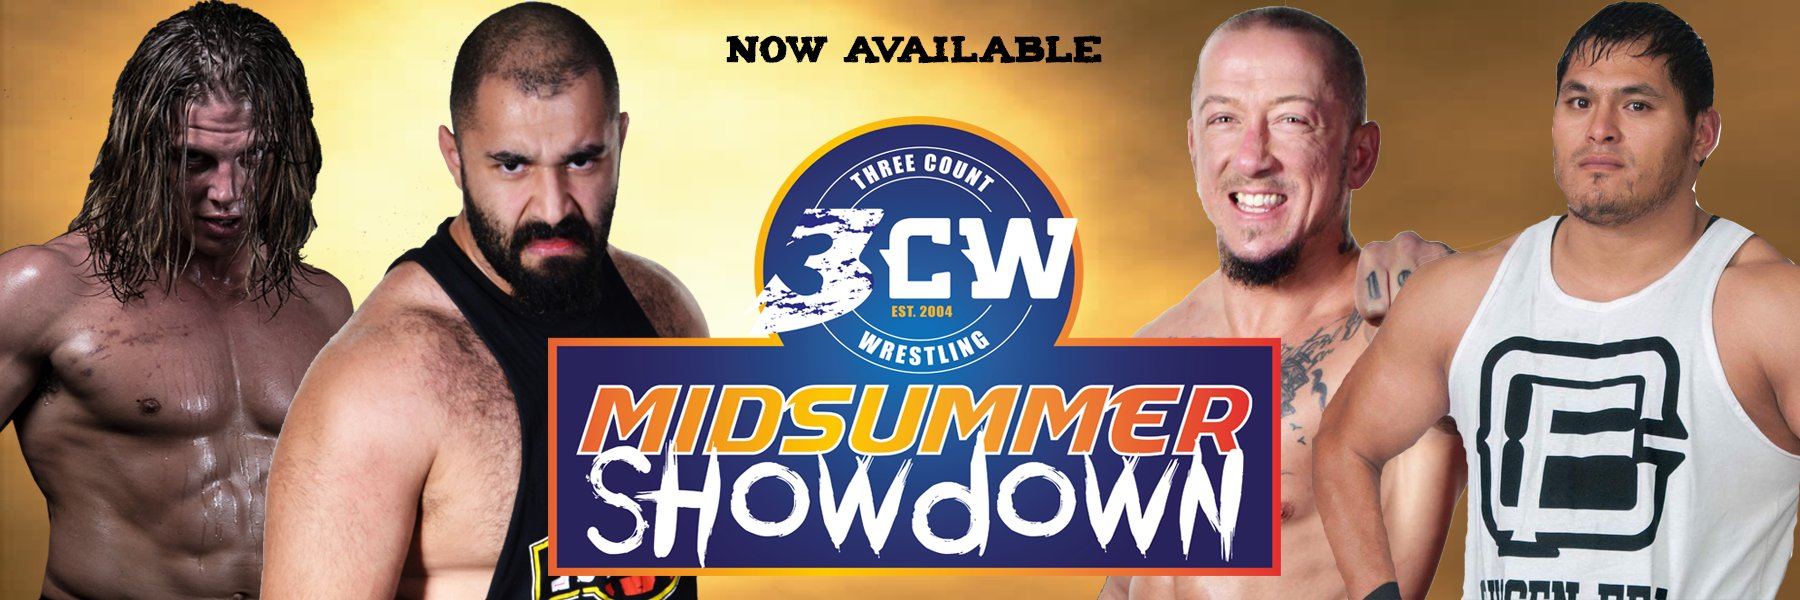 3CW Mid-Summer Showdown 2017